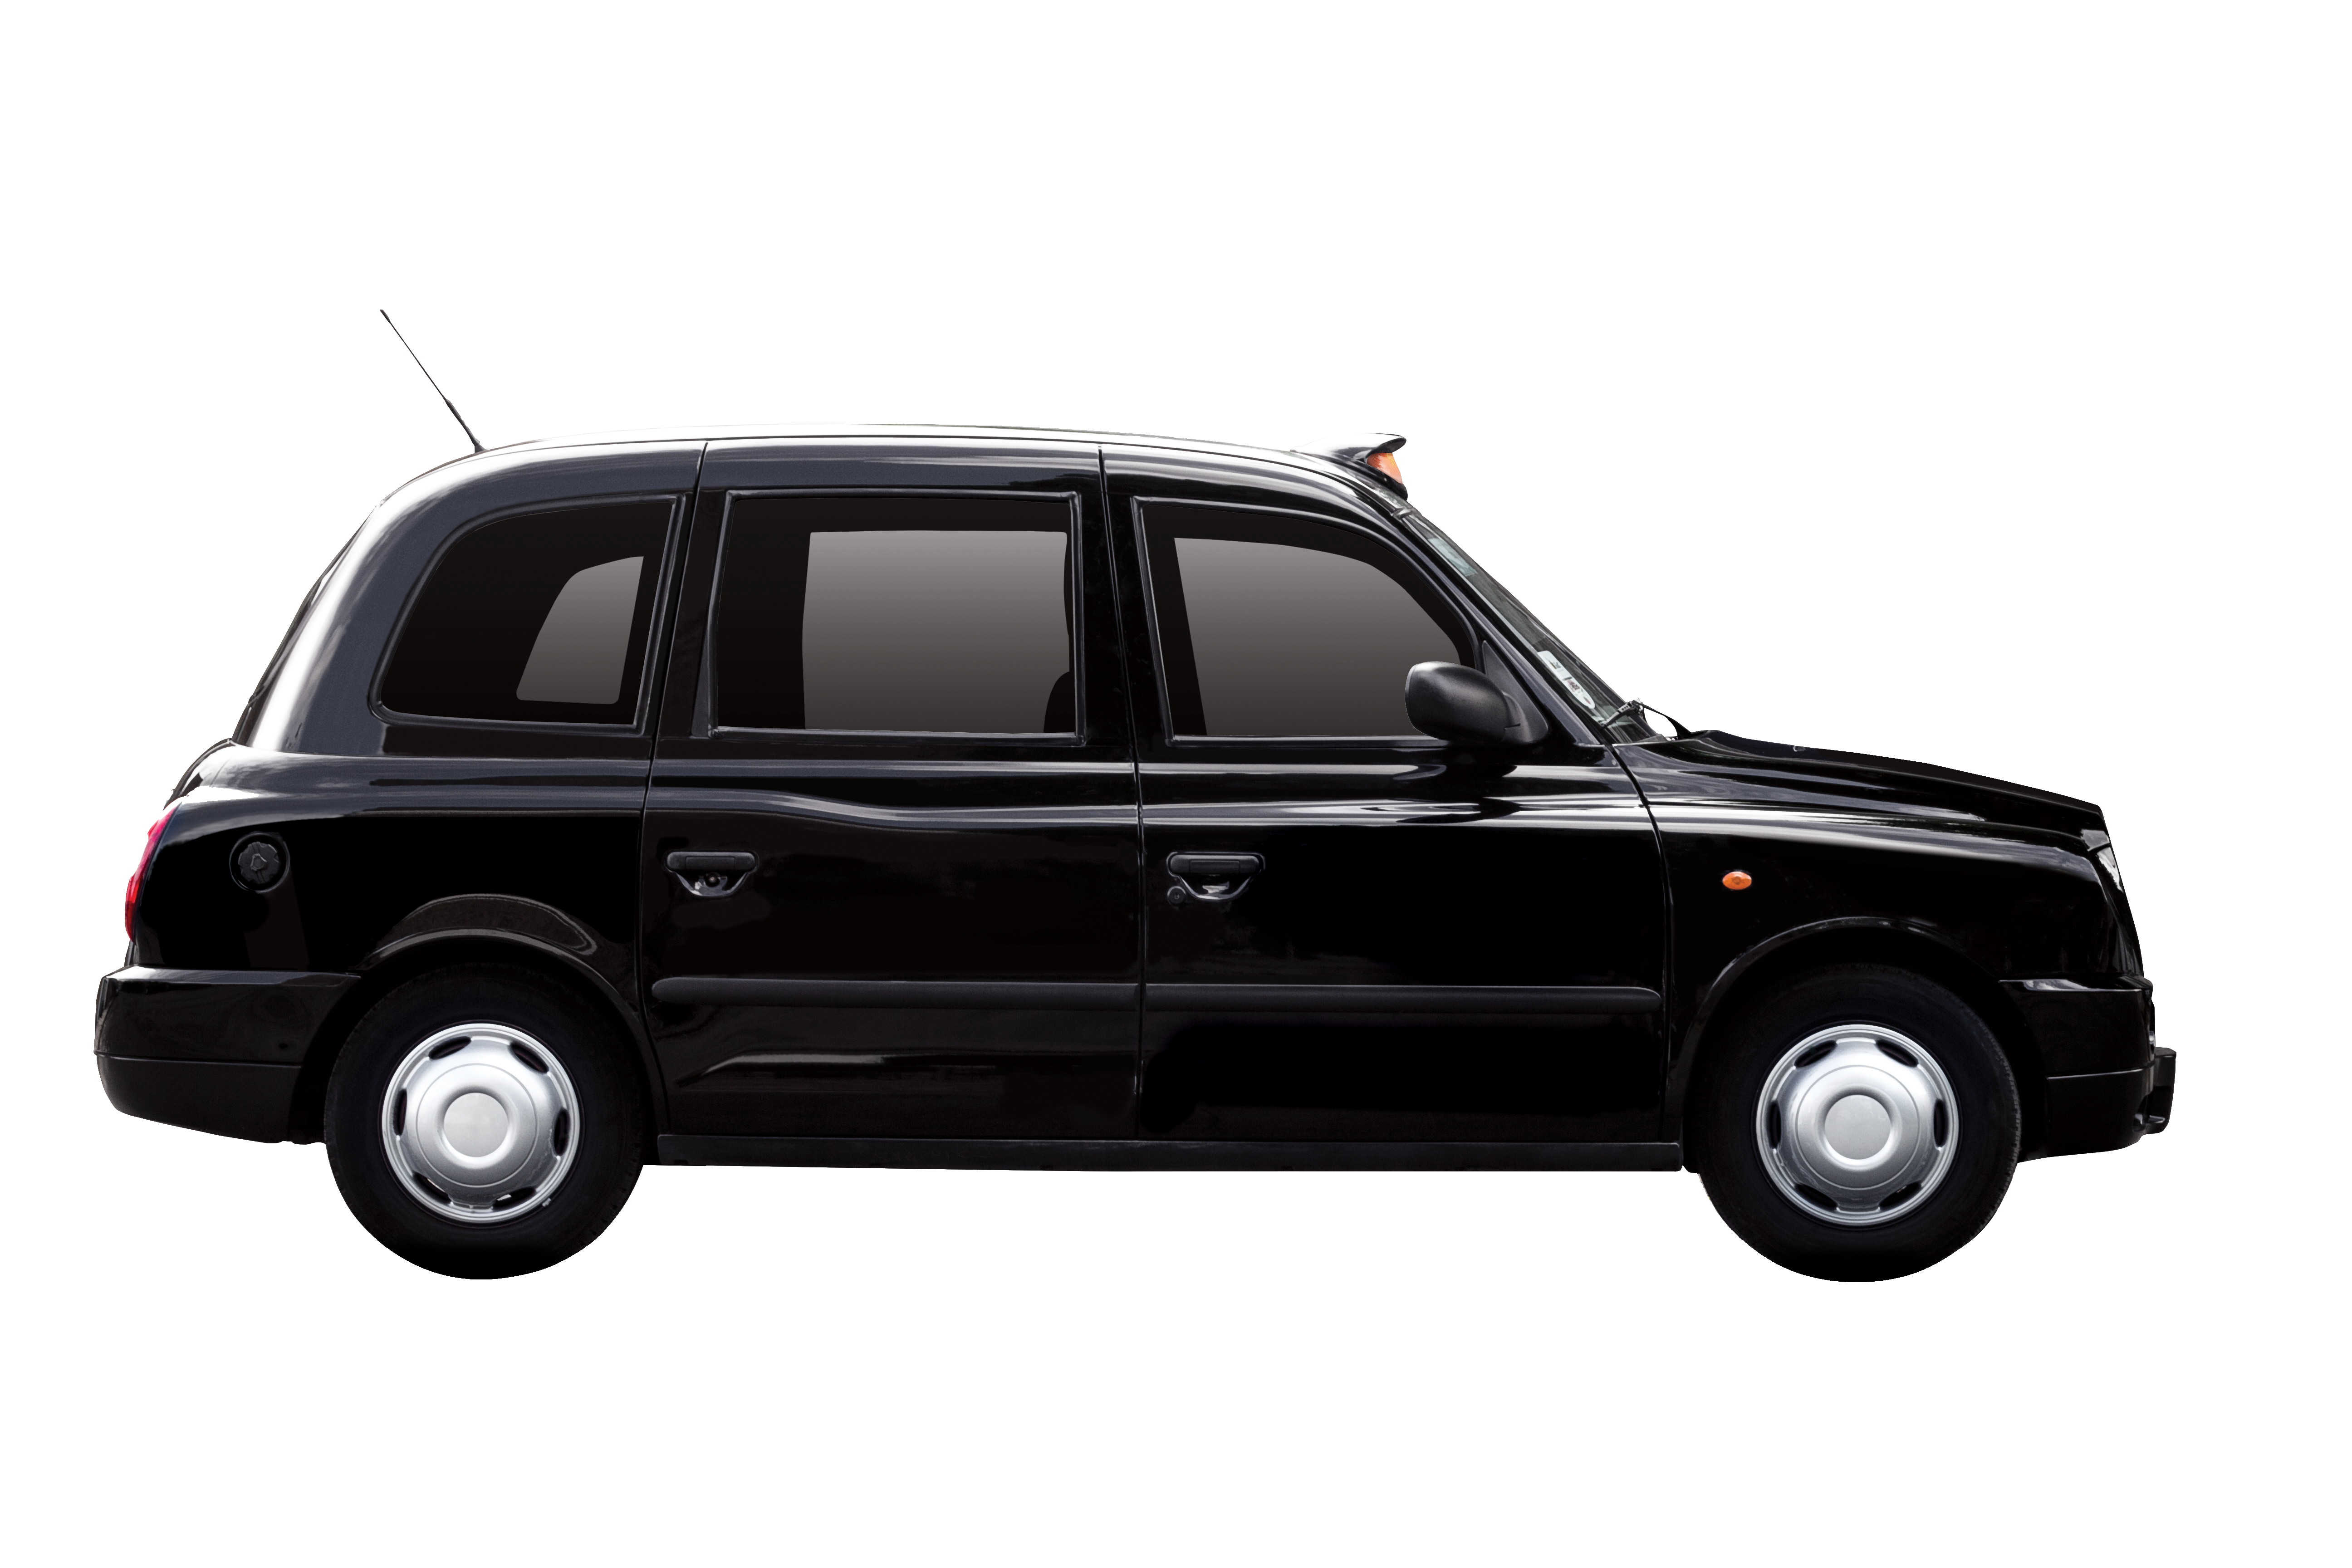 Clipart london taxi jpg black and white library London clipart taxi london, London taxi london Transparent FREE for ... jpg black and white library